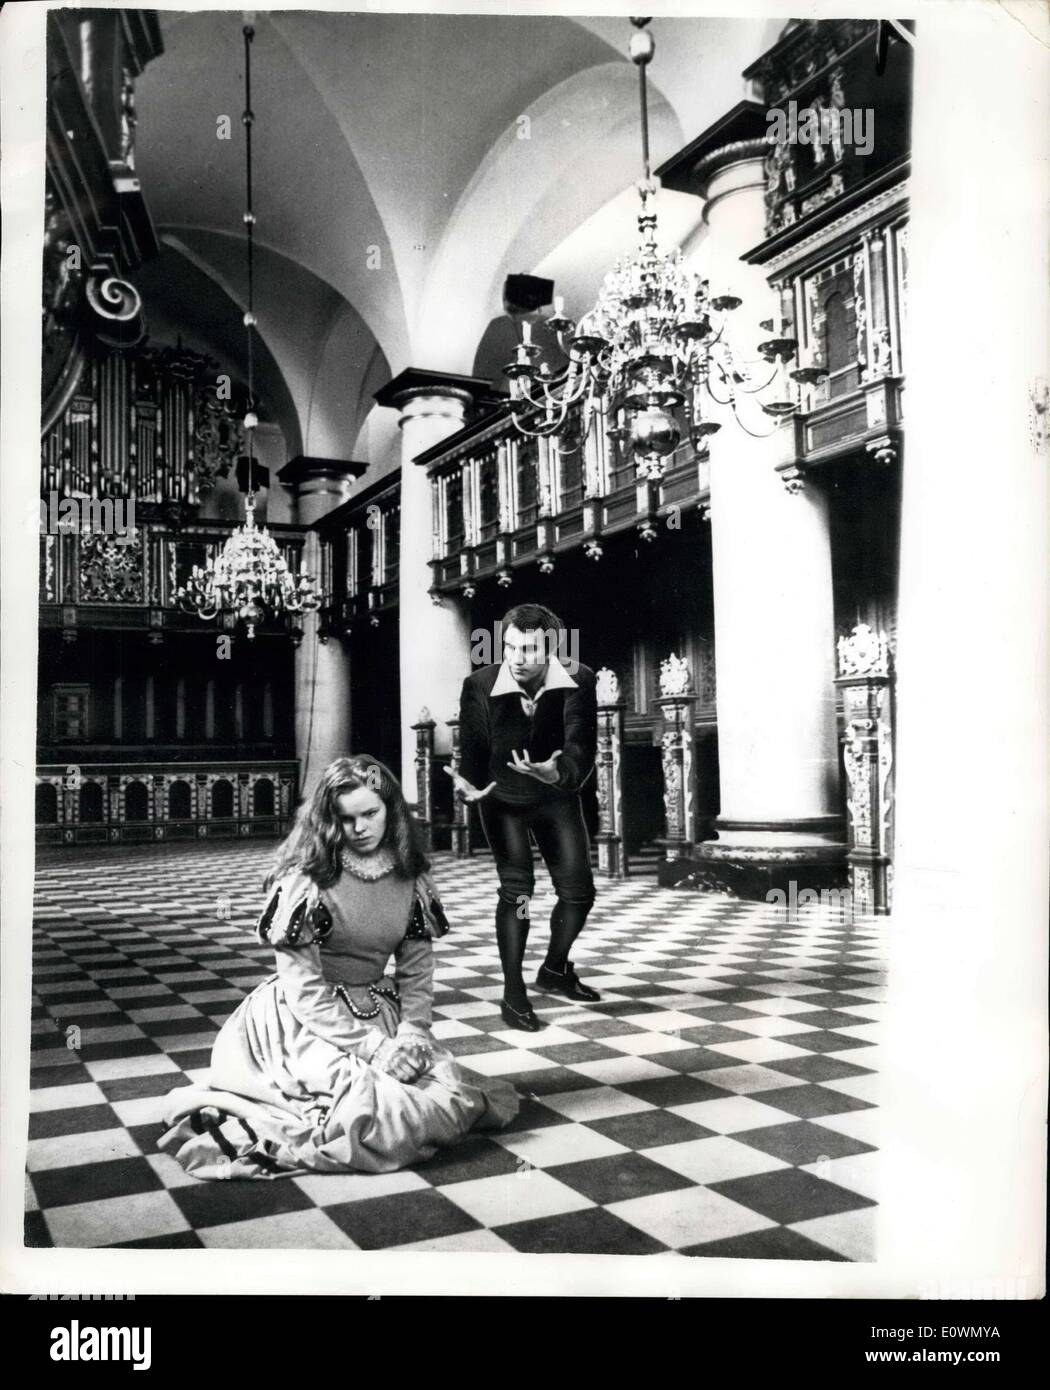 Sep. 23, 1963 - Filming of Hamlet is Complete: The filming of the combined Anglo-Danish television production of ''Hamlet'' which has been staged at the Kronborg Castle at Elsimore in Denmark which was the setting that Shakespeare gave to the play, is now complete after only 10days work, including rehearsals, which has meant that the 100 or so workers that have been involved in the production have had to work a fourteen hour day. Photo shows Hamlet (Christopher Plummer) and Ophelia (Jo Maxwell Muller) play their tragic love scene in the Royal Chapel of the Kronborg Castle at Elsinore. - Stock Image